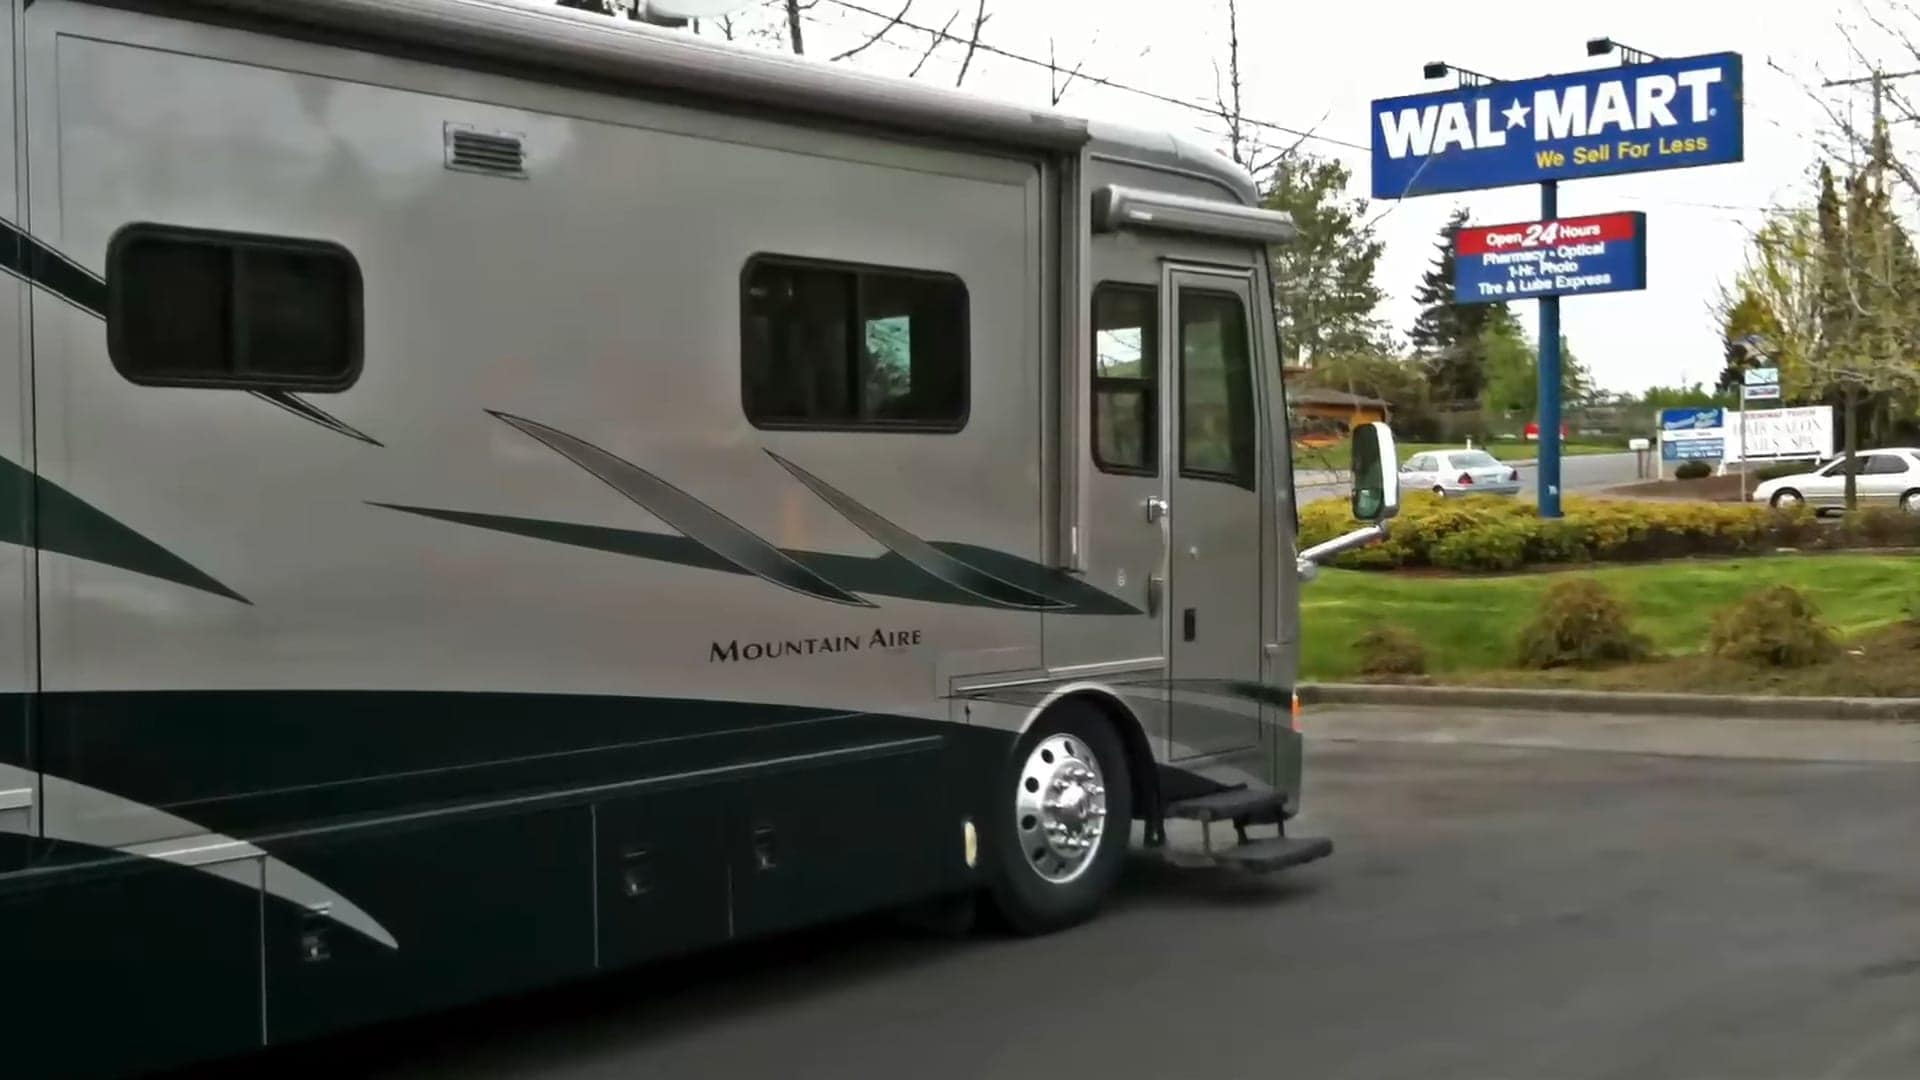 Free overnight RV parking in business lots offer tremendous conveniences for travelers.